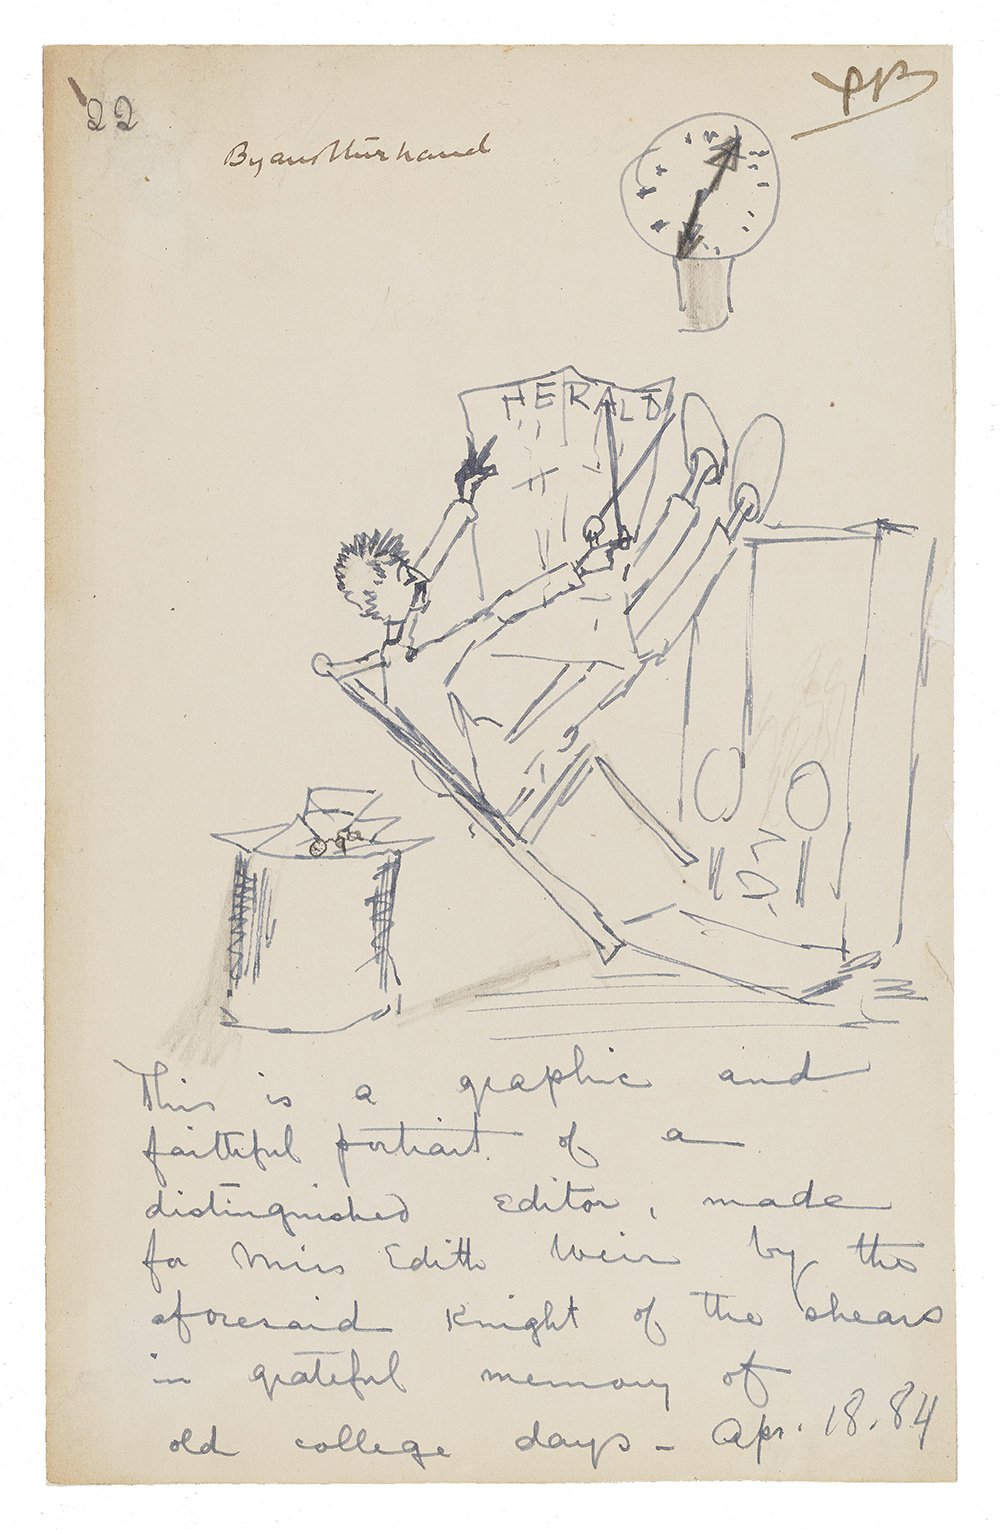 Illustrated note in blue ink with a sketch of a man reading a newspaper while leaning back in a char. He is wearing slippers and has his feet propped up on a fireplace mantle. There is a clock on the wall and box behind his chair.